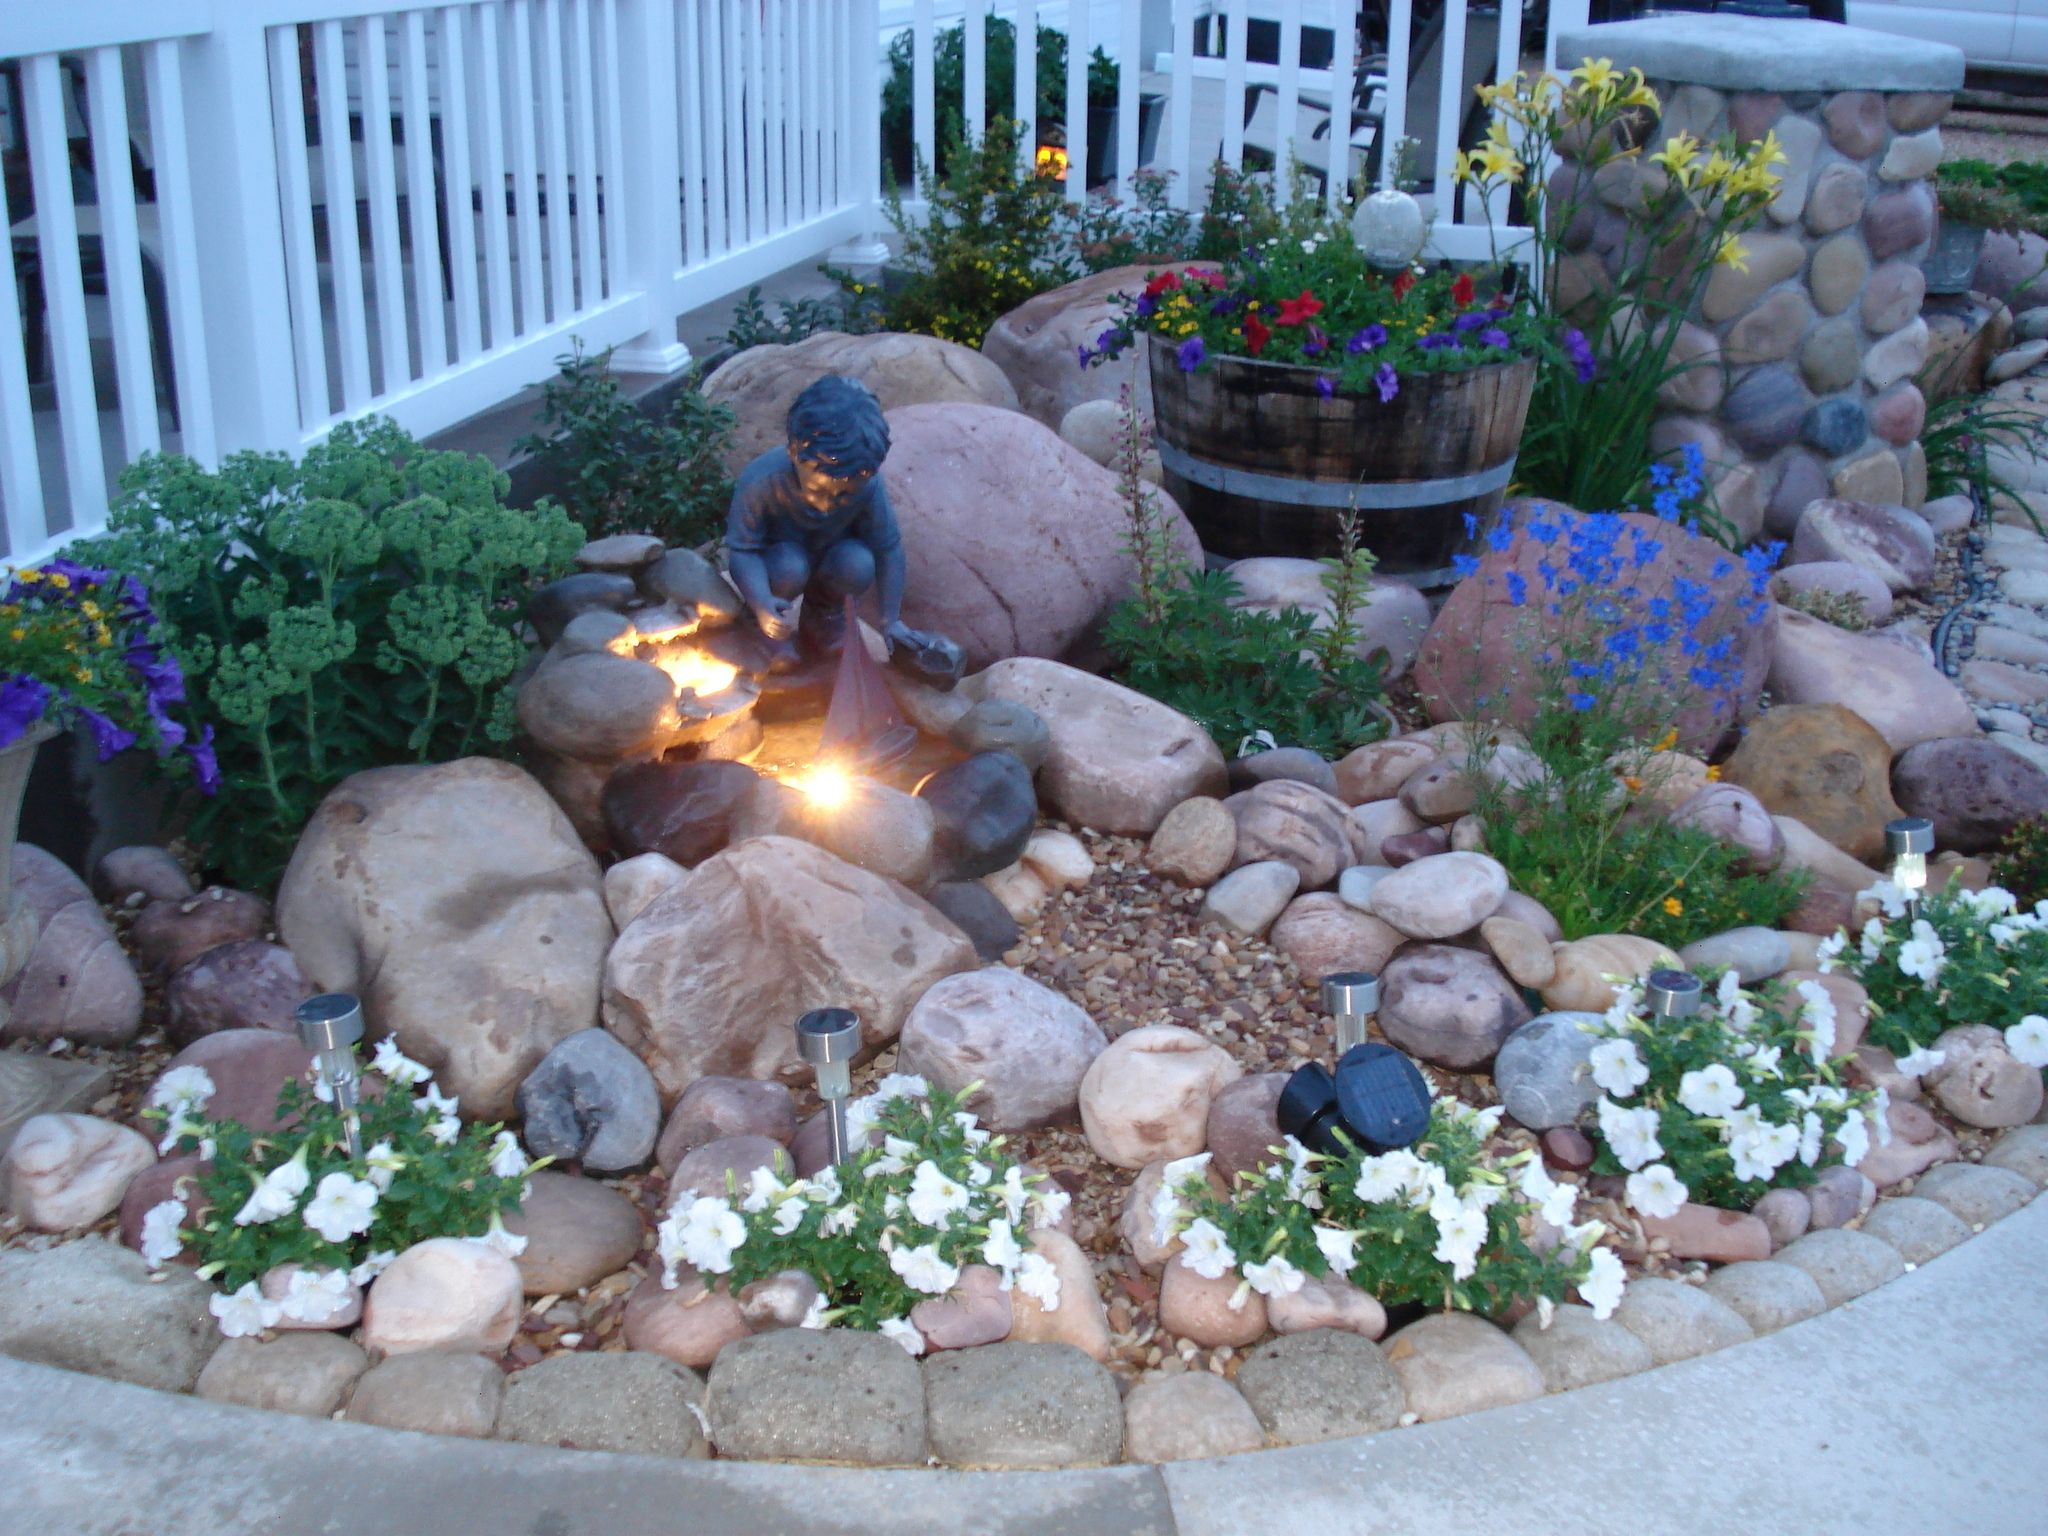 Garden Ideas On Pinterest garden ideas pinterest small gardening ideas pinterest pdf plans Impressive Small Rock Garden Ideas